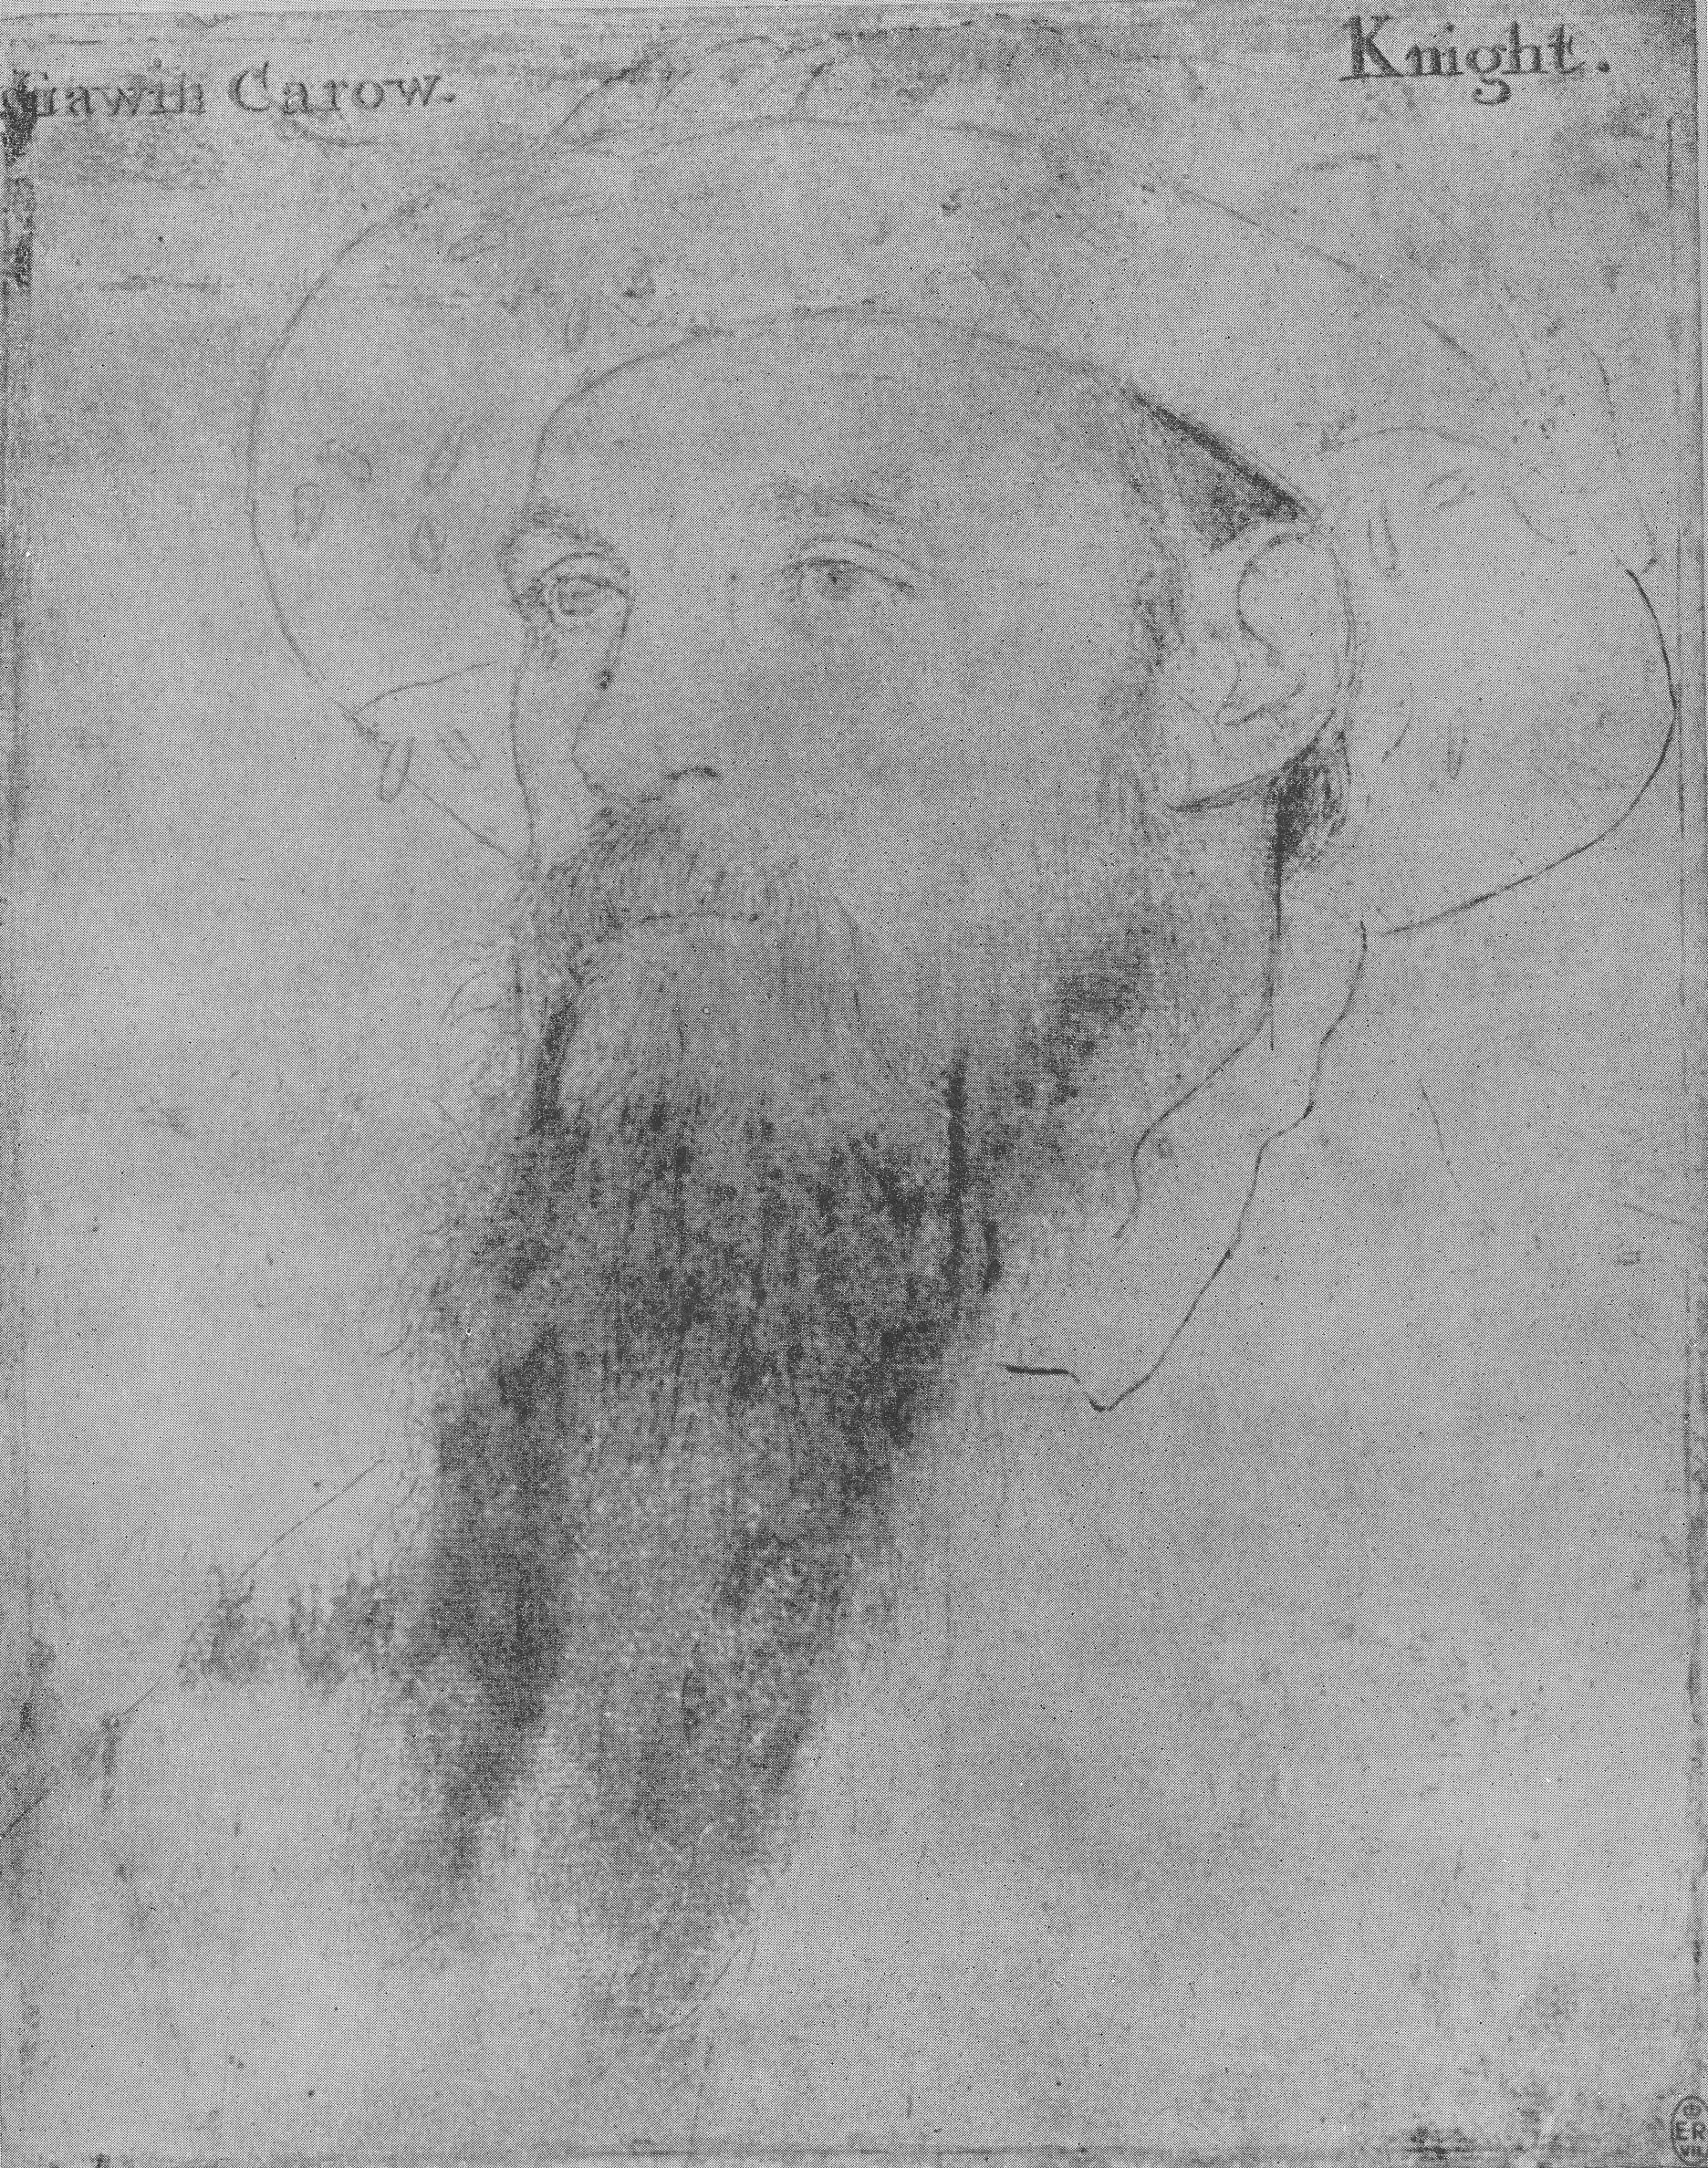 Portrait of Sir Gavin Carew. 1532-43